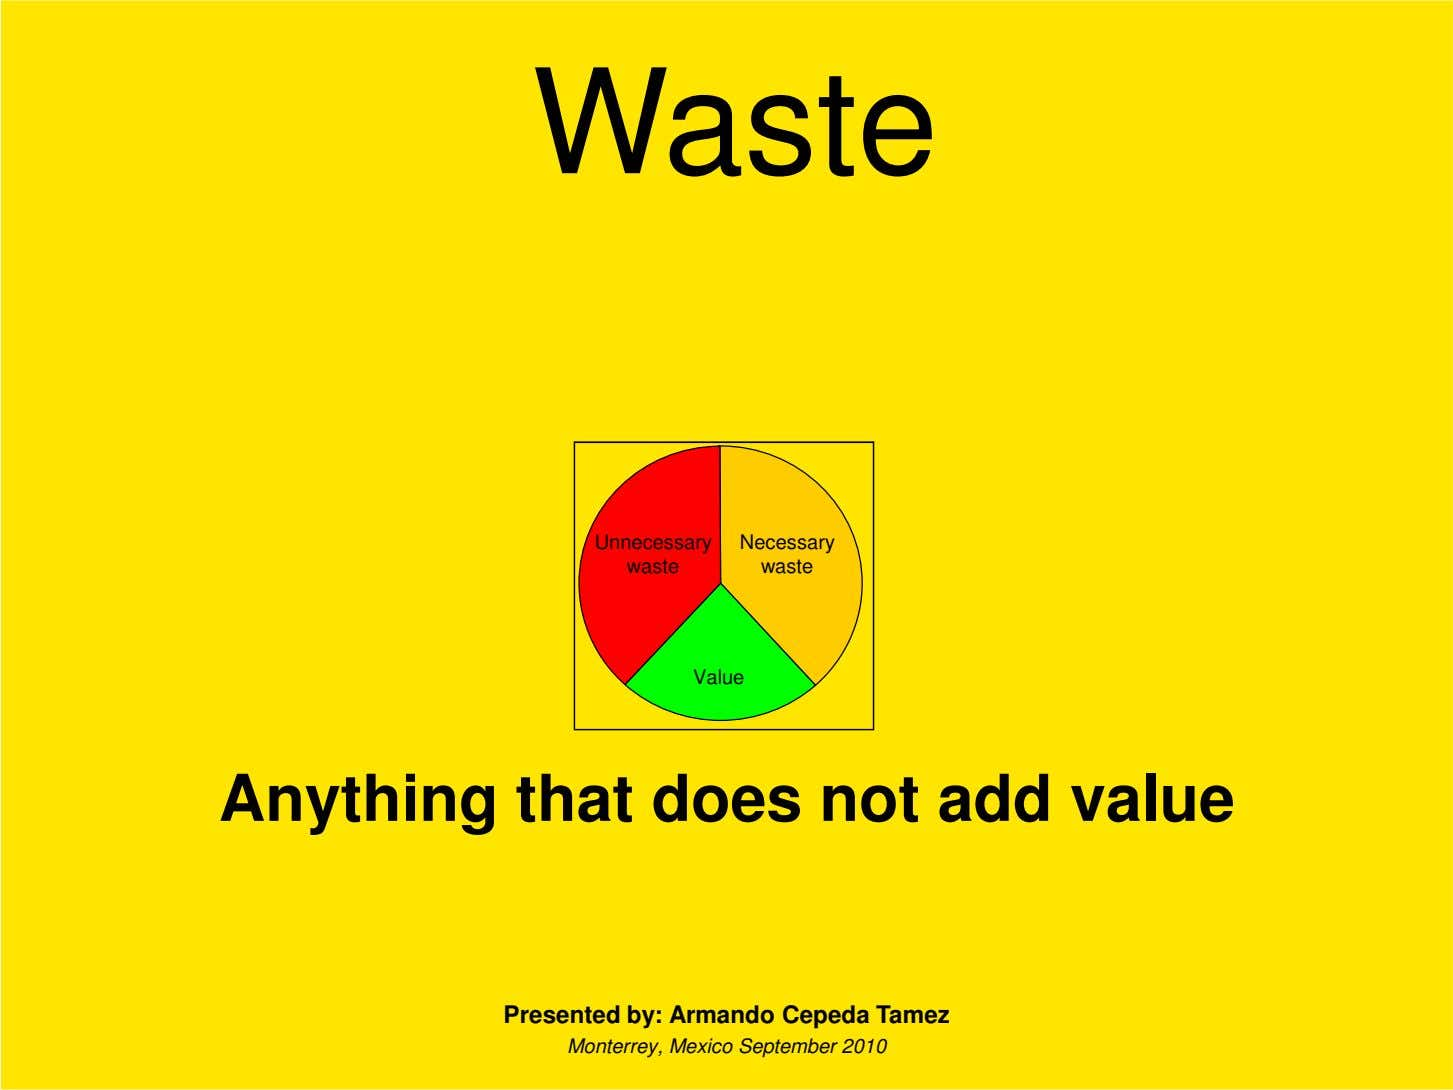 Waste Unnecessary Necessary waste waste Value Anything that does not add value Presented by: Armando